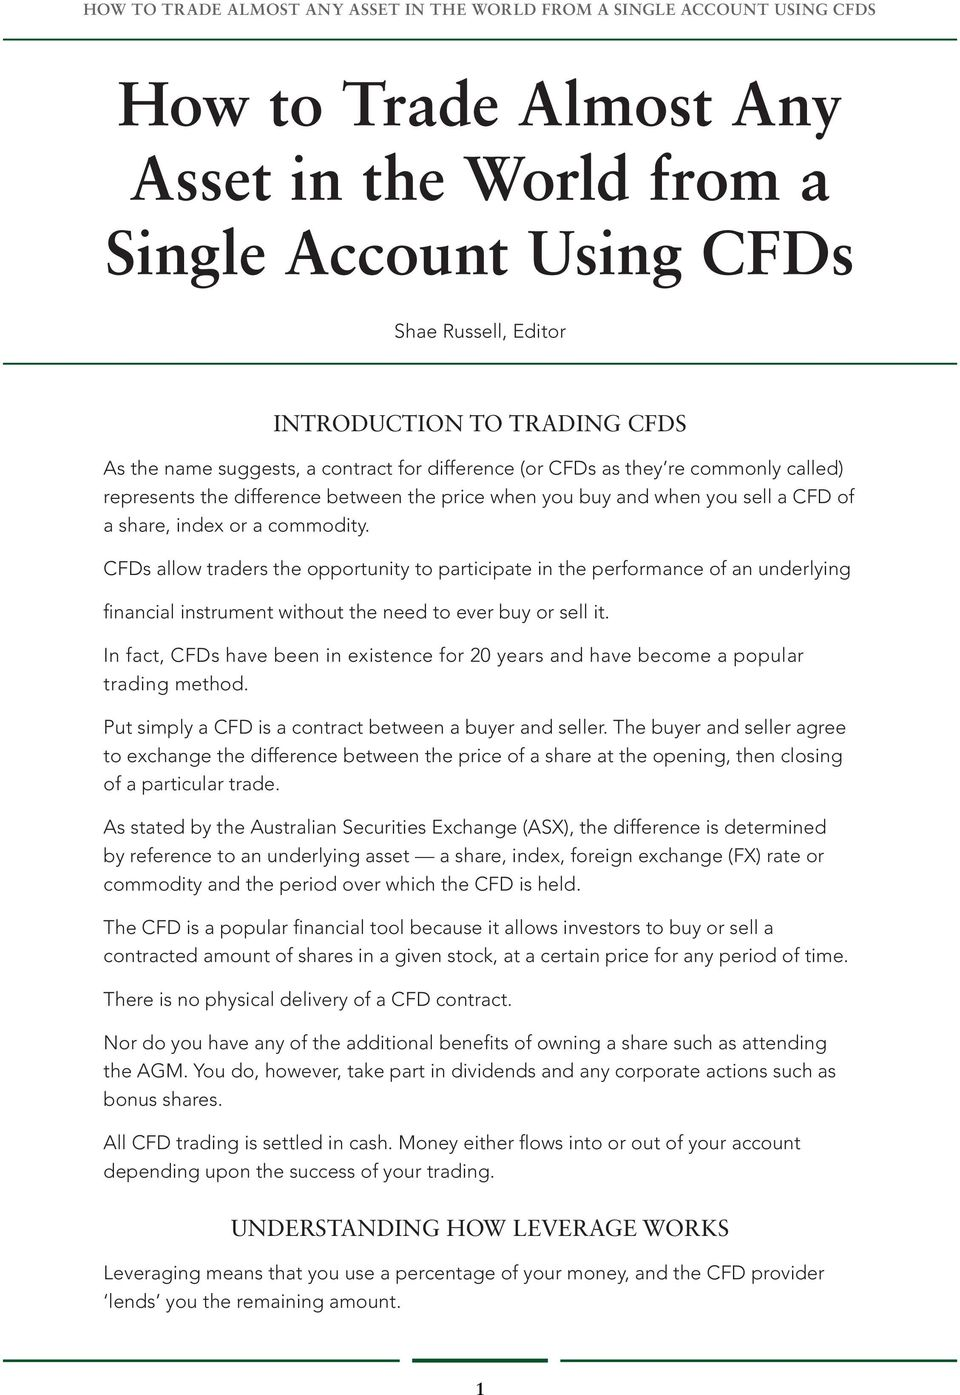 CFDs allow traders the opportunity to participate in the performance of an underlying financial instrument without the need to ever buy or sell it.